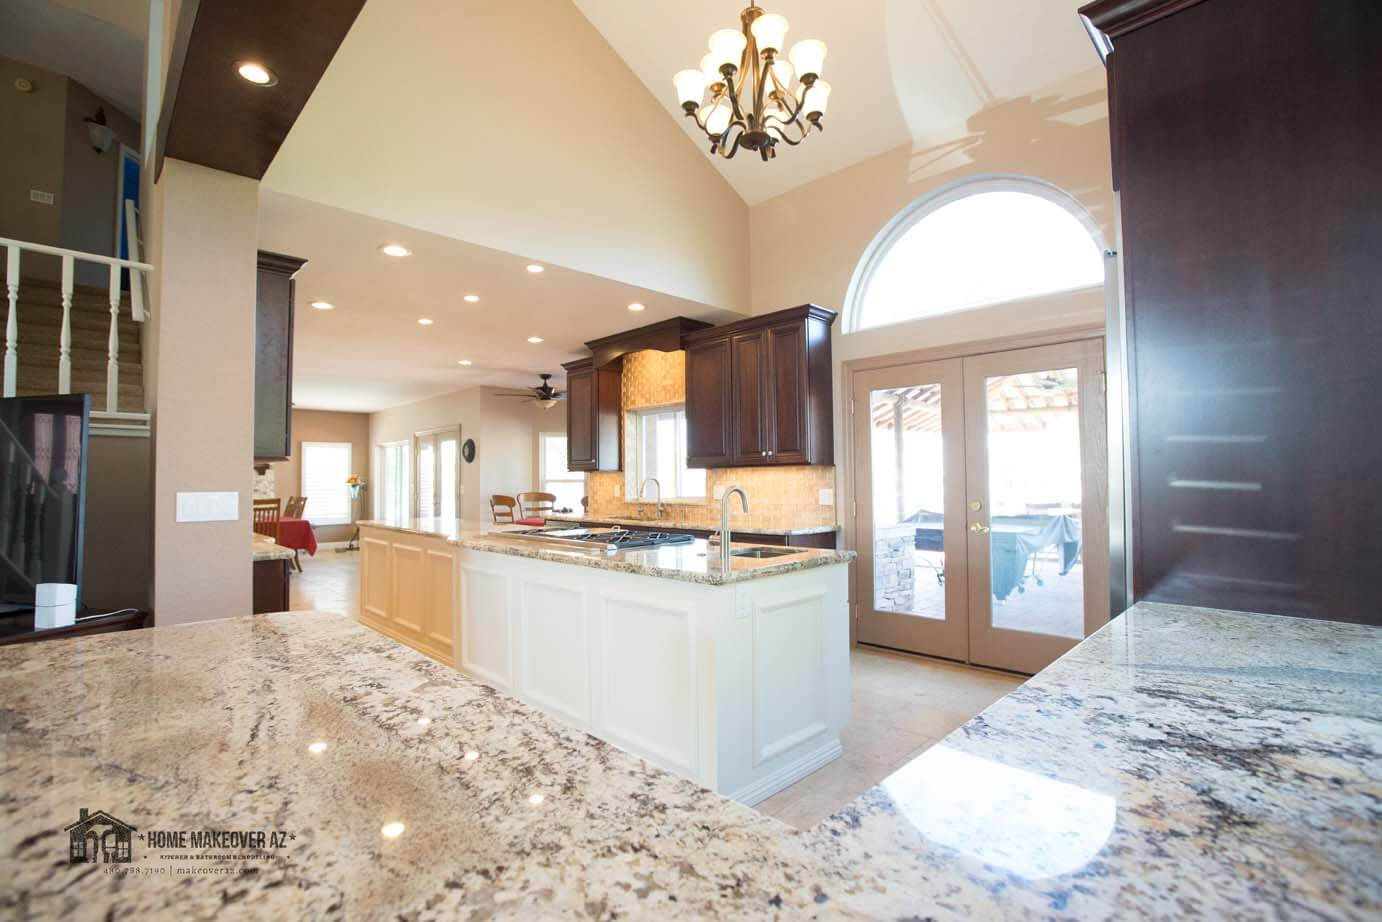 3 Open Concept Before And After Kitchen Remodels To Make You Drool Home Makeover Creations